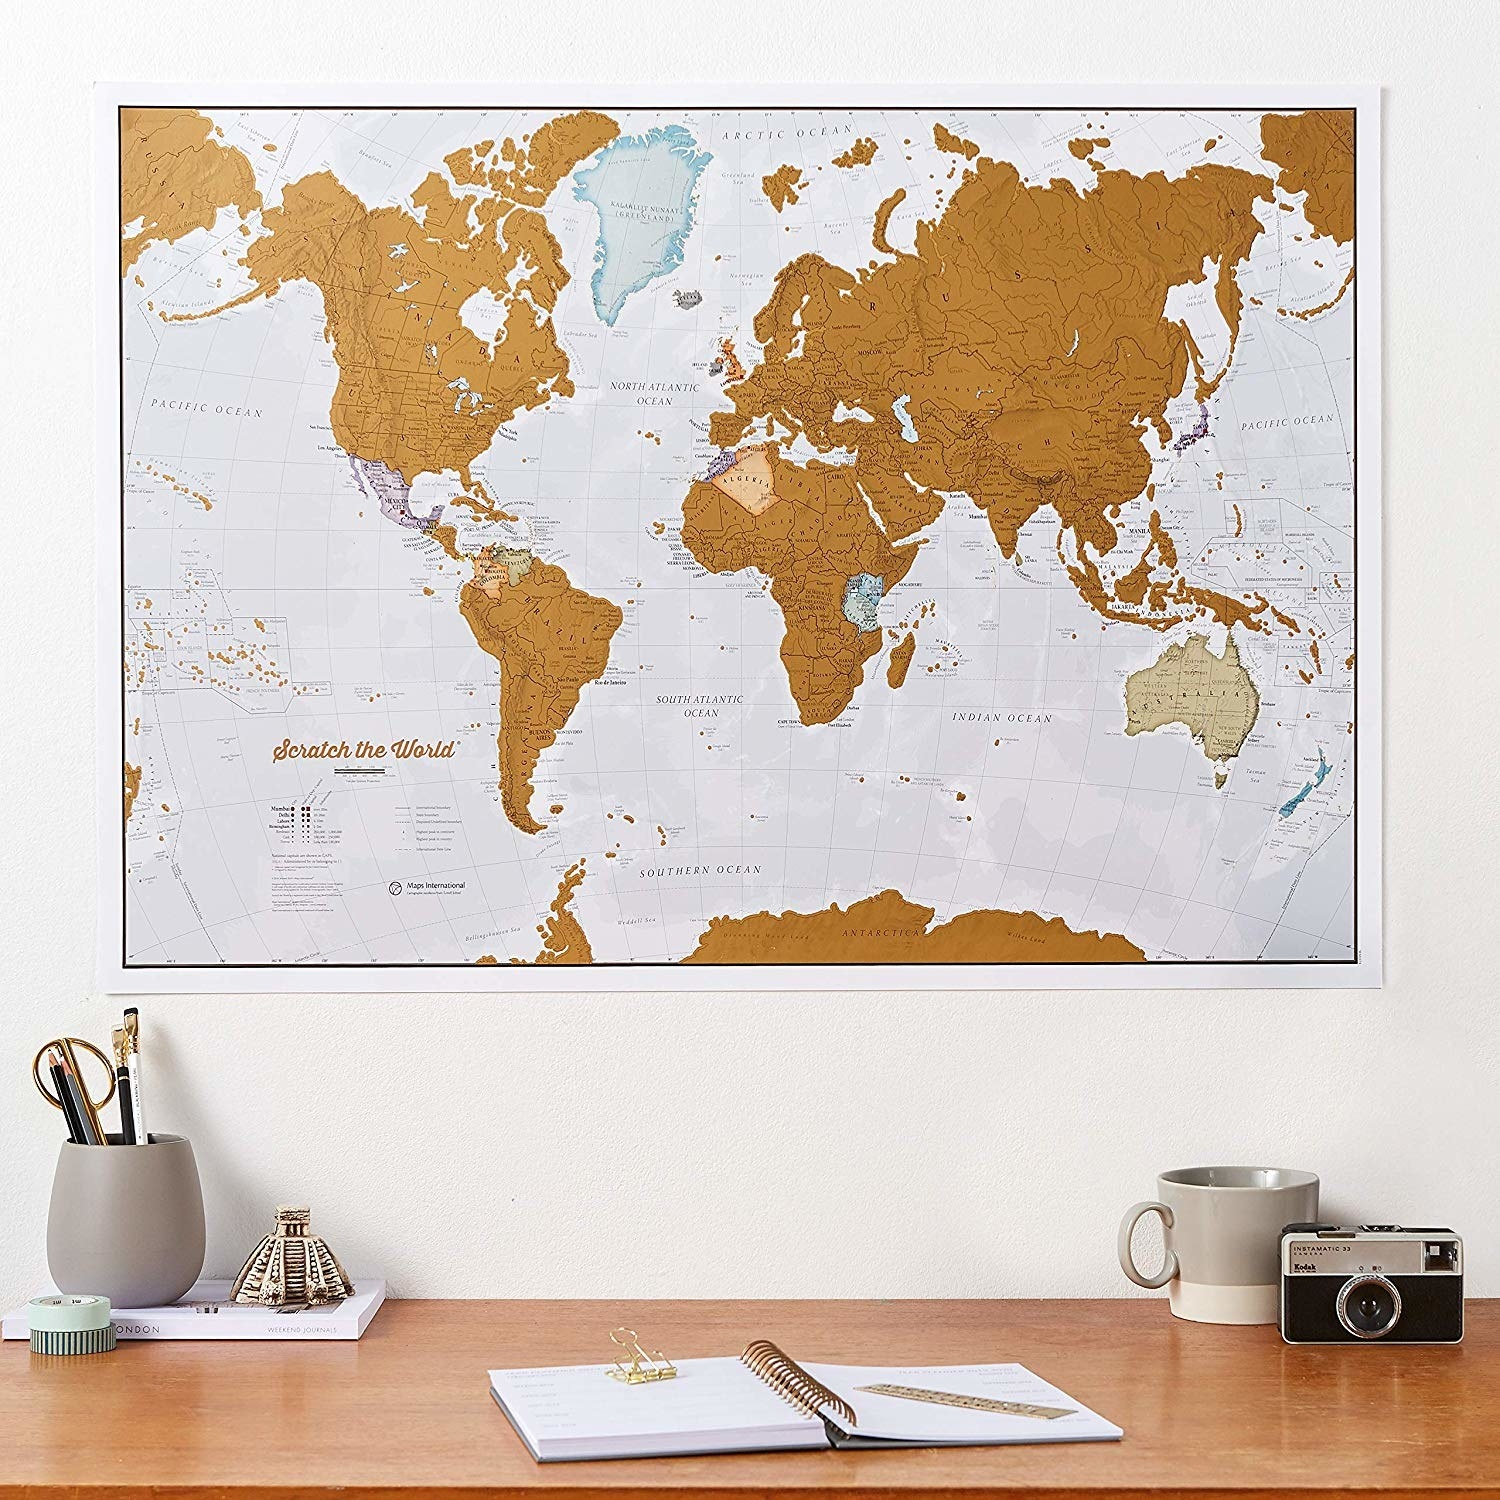 A large map of the world on a wall, with several countries scratched off